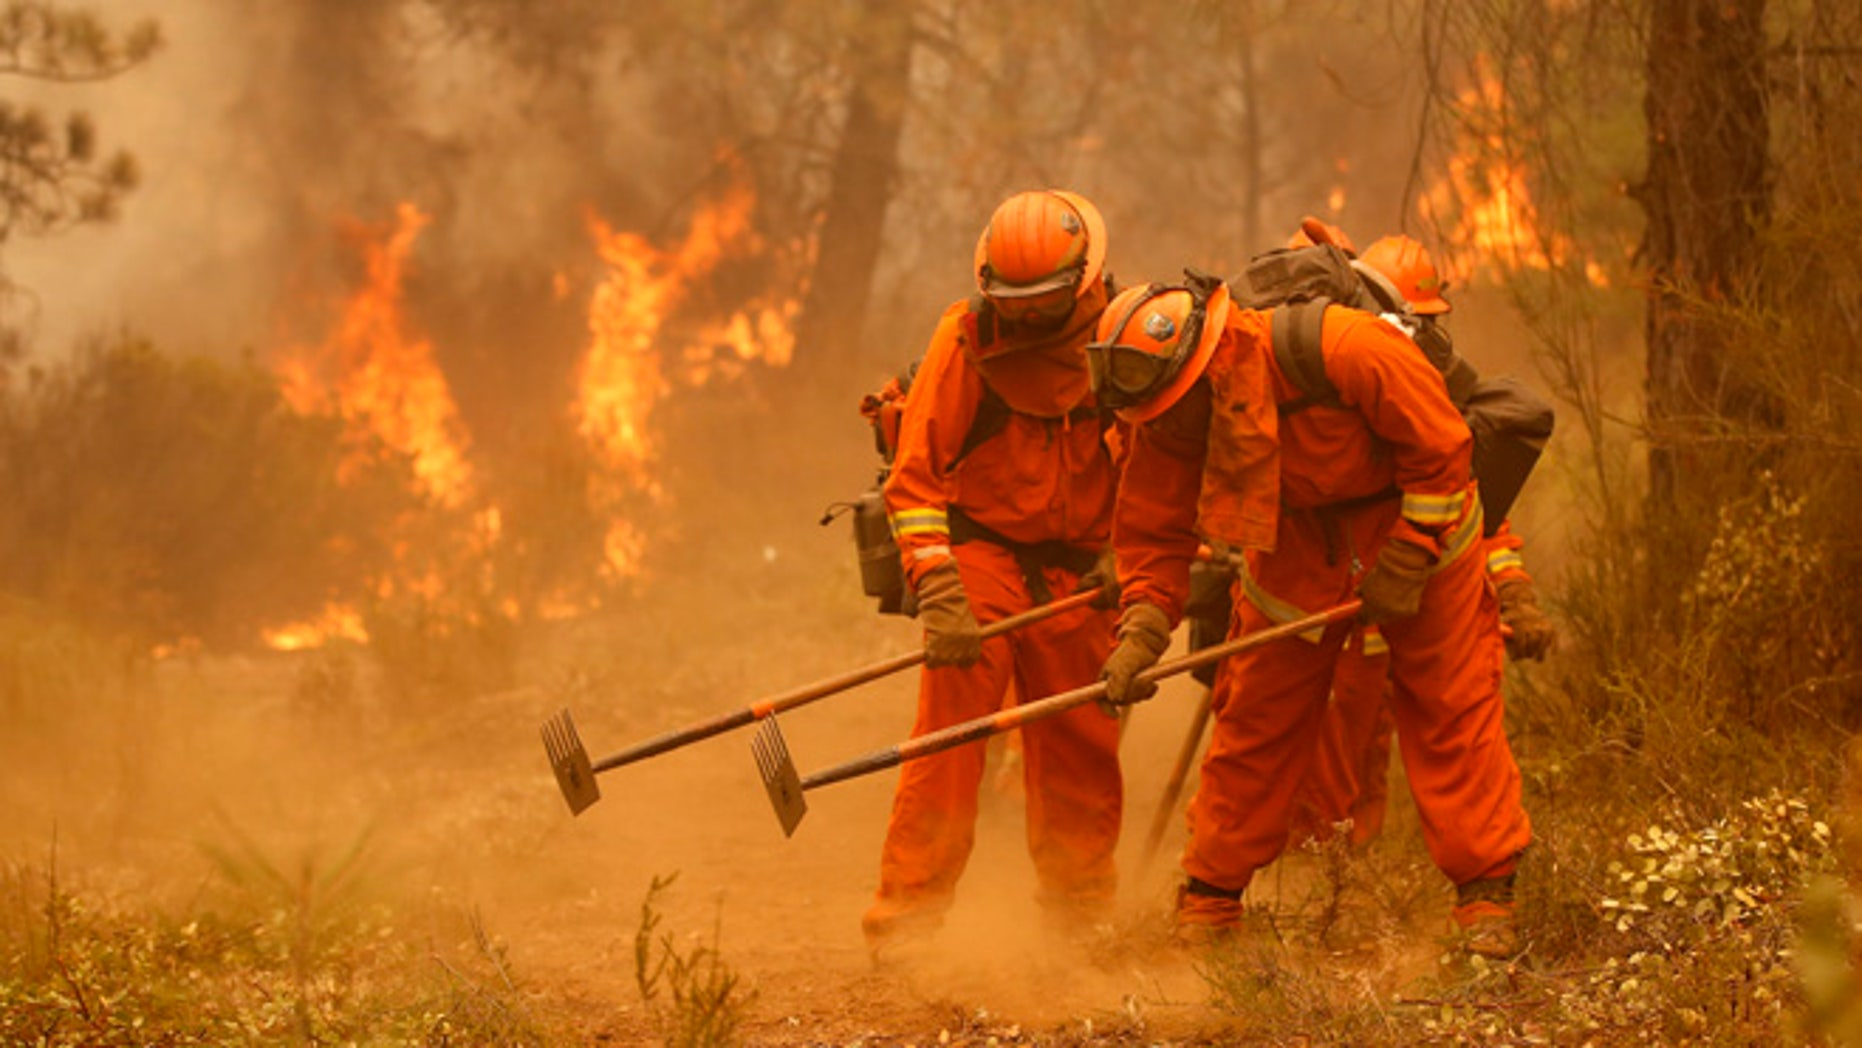 Sept. 12, 2015: A California Department of Corrections and Rehabilitation inmate work crew builds a containment line ahead of flames from a fire.